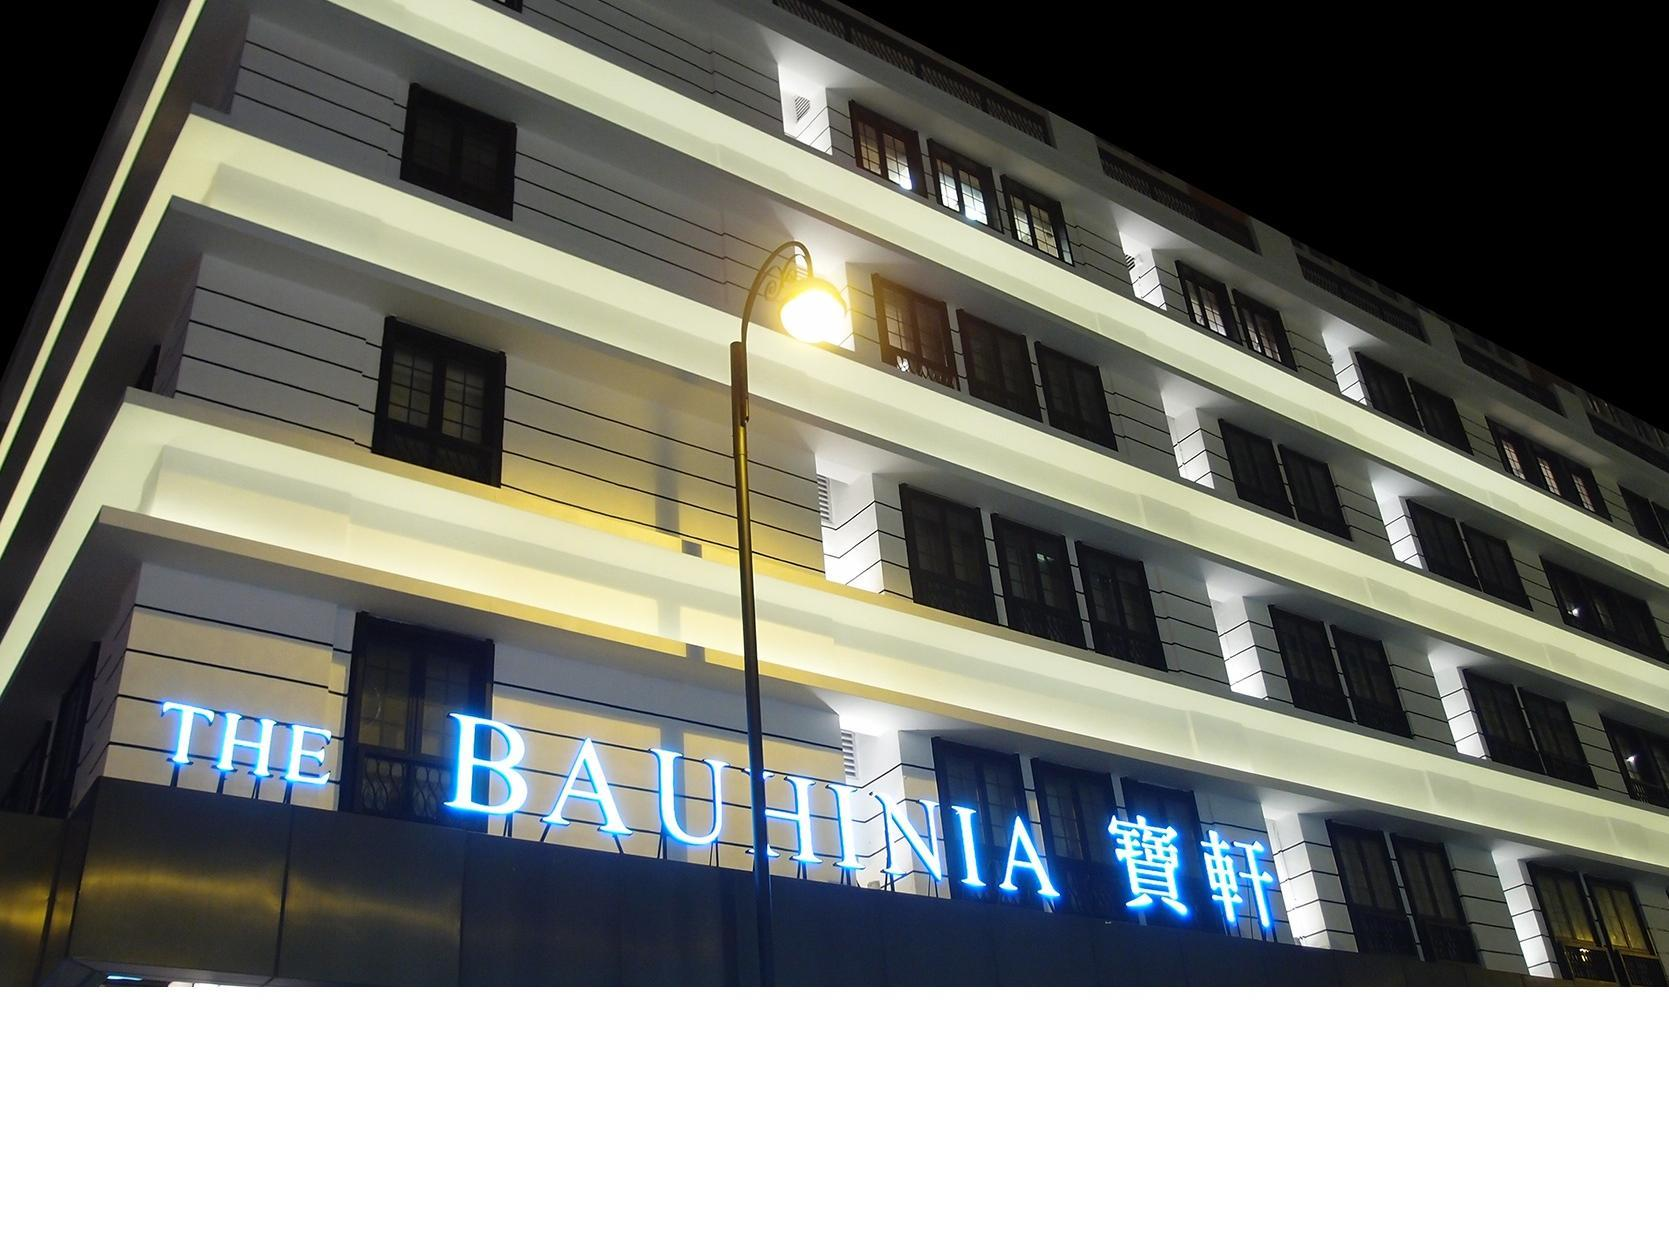 The Bauhinia Hotel - Central Hong Kong - Hotel Exterior